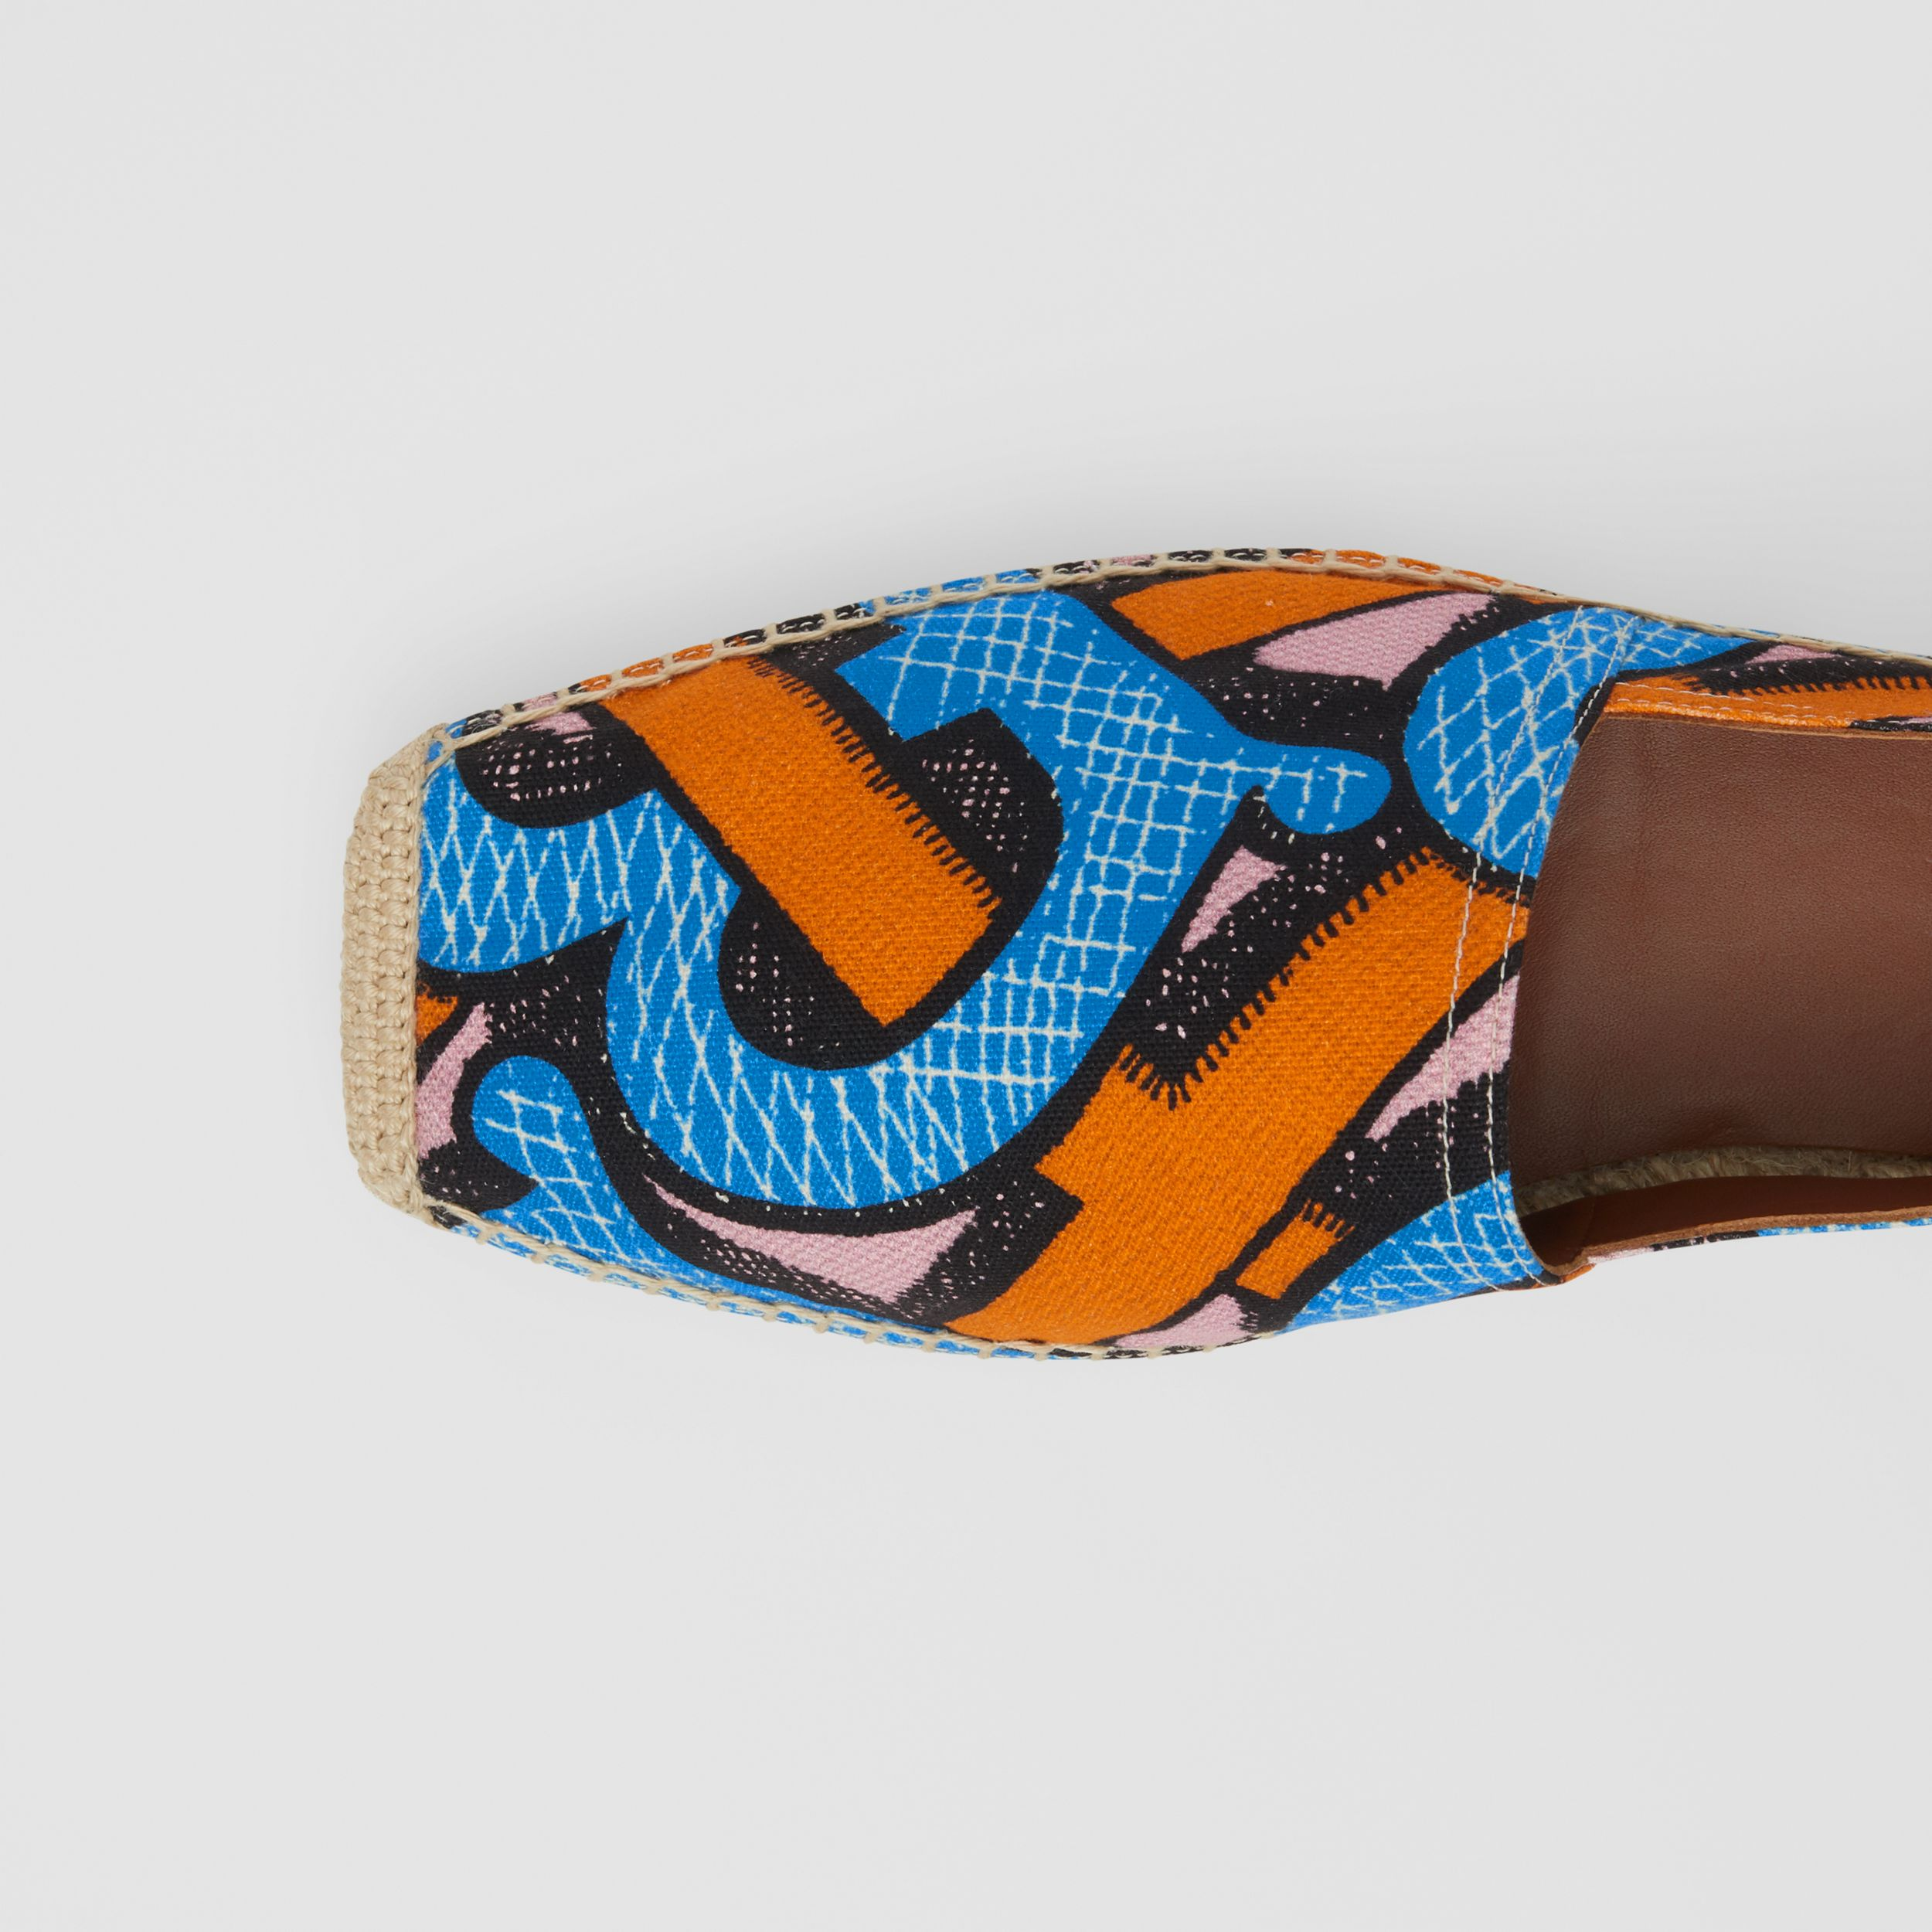 Monogram Print Cotton Canvas Espadrilles in Bright Cobalt - Women | Burberry - 2